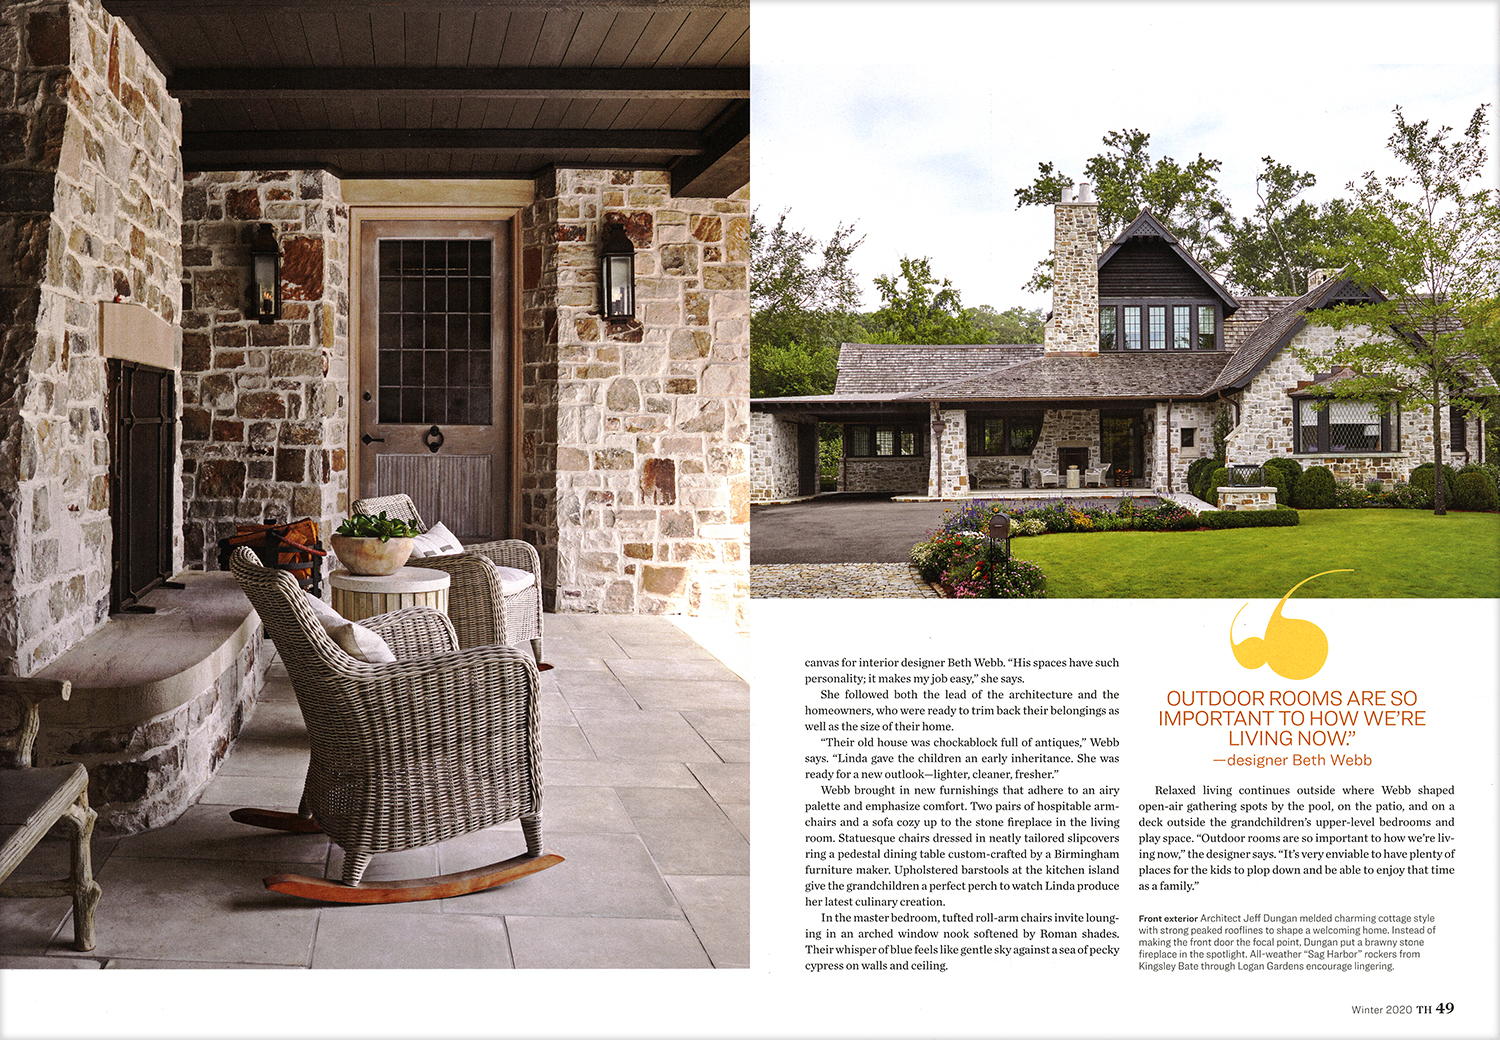 2020 11 TraditionalHome 03